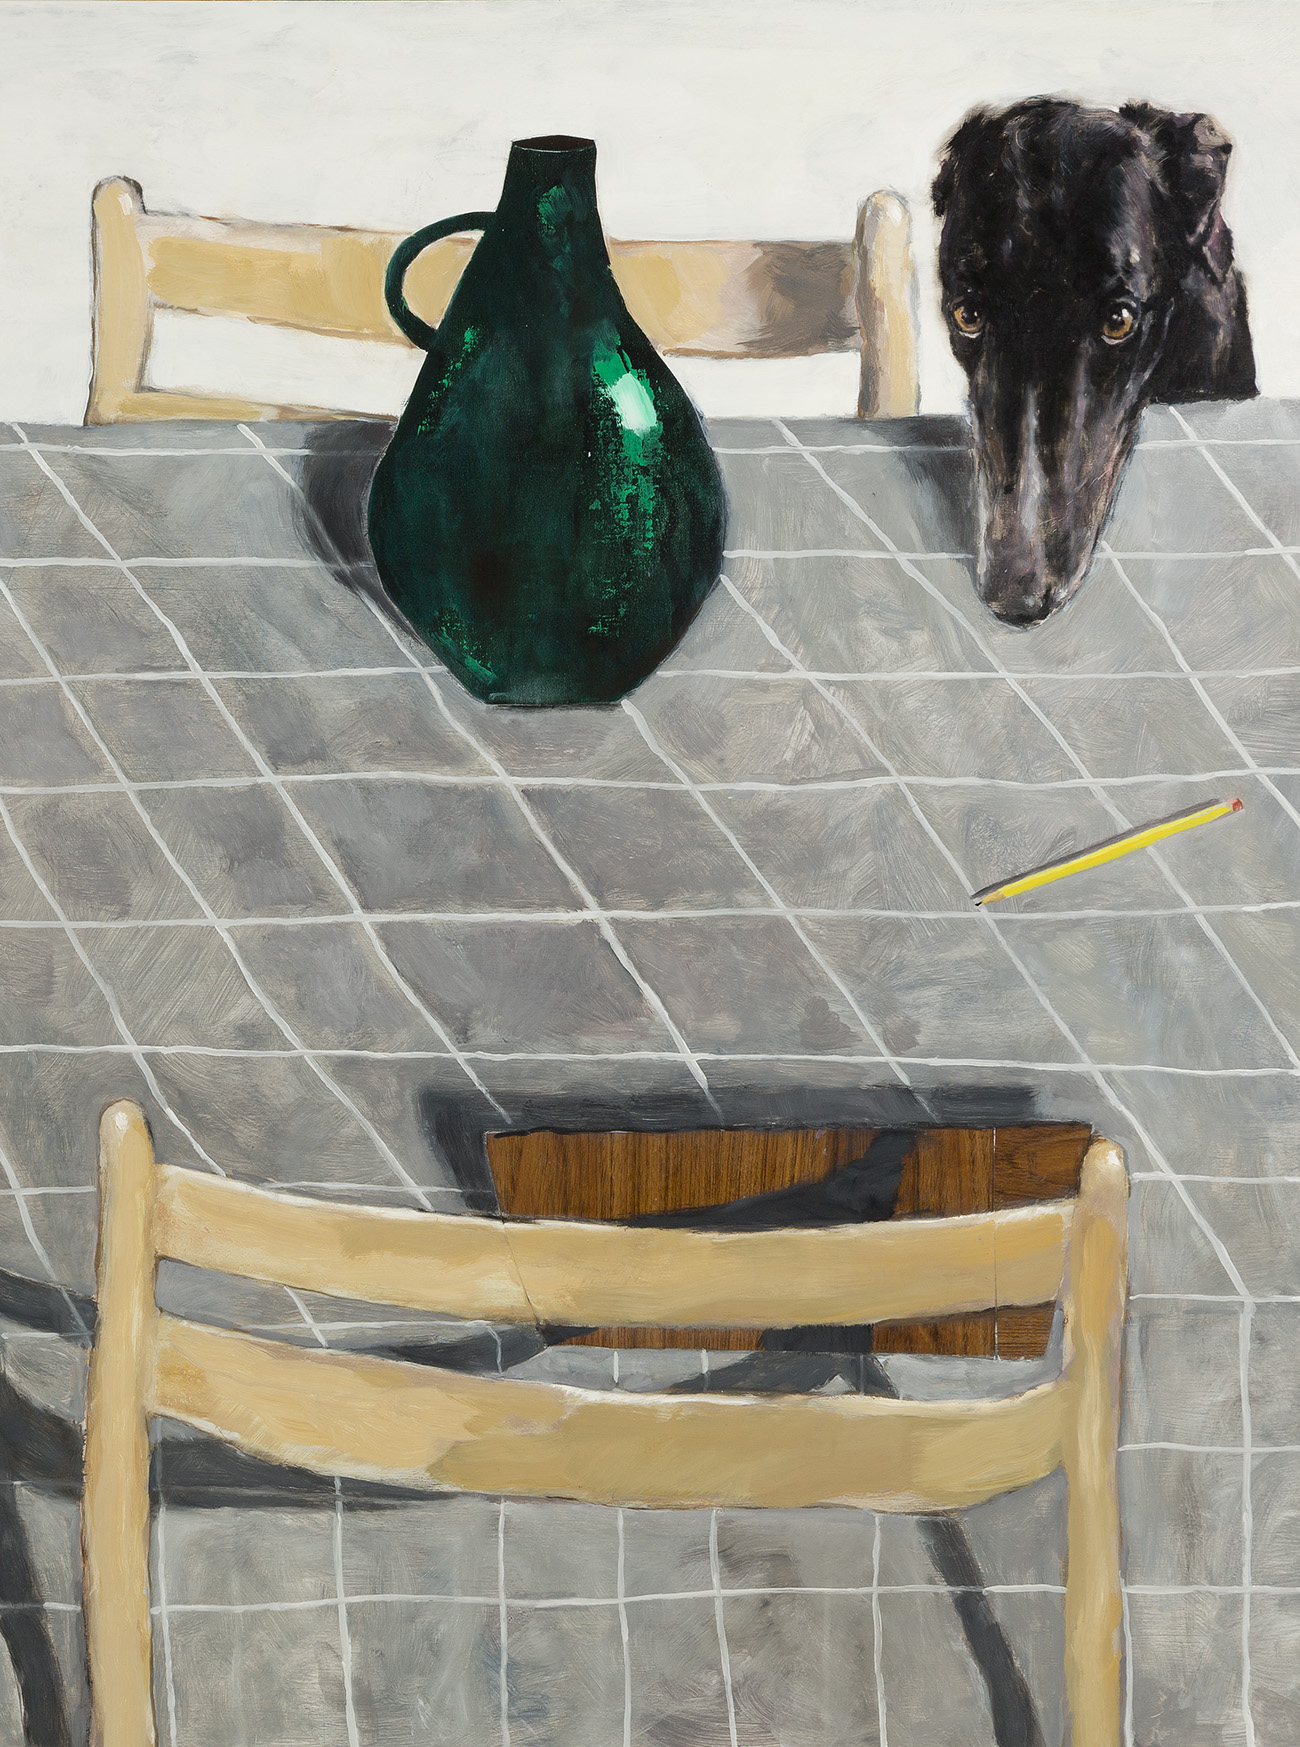 adrian_stojkovich_dogs_and_table_setting_detail_oil_painting_on_panel_2017_website_cover_image